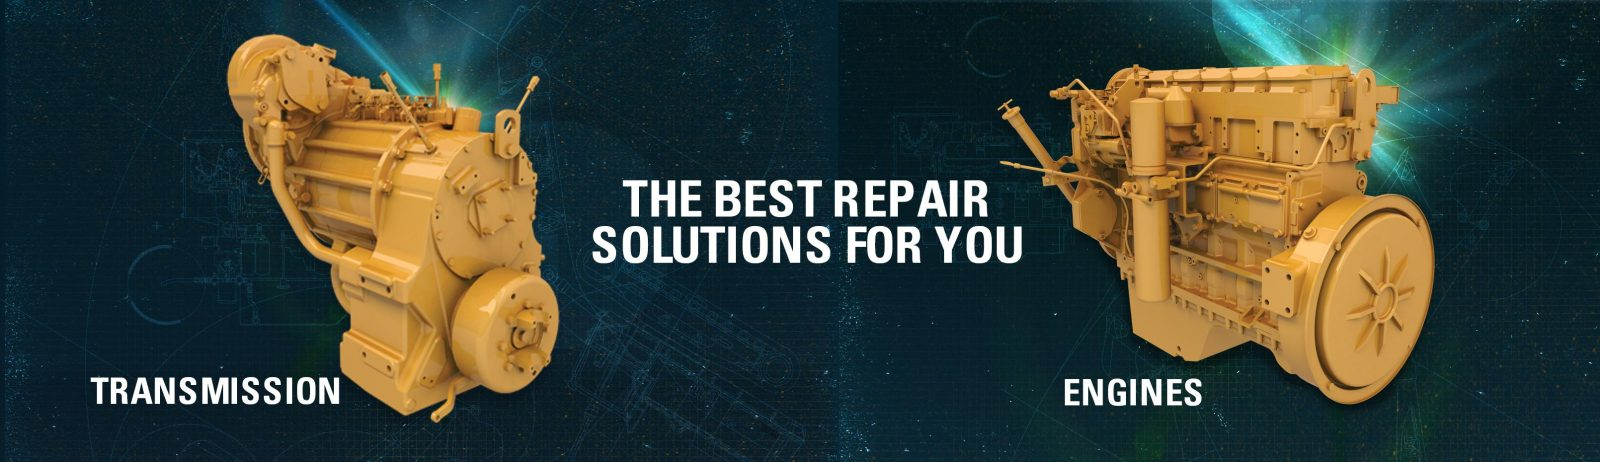 Repair Options